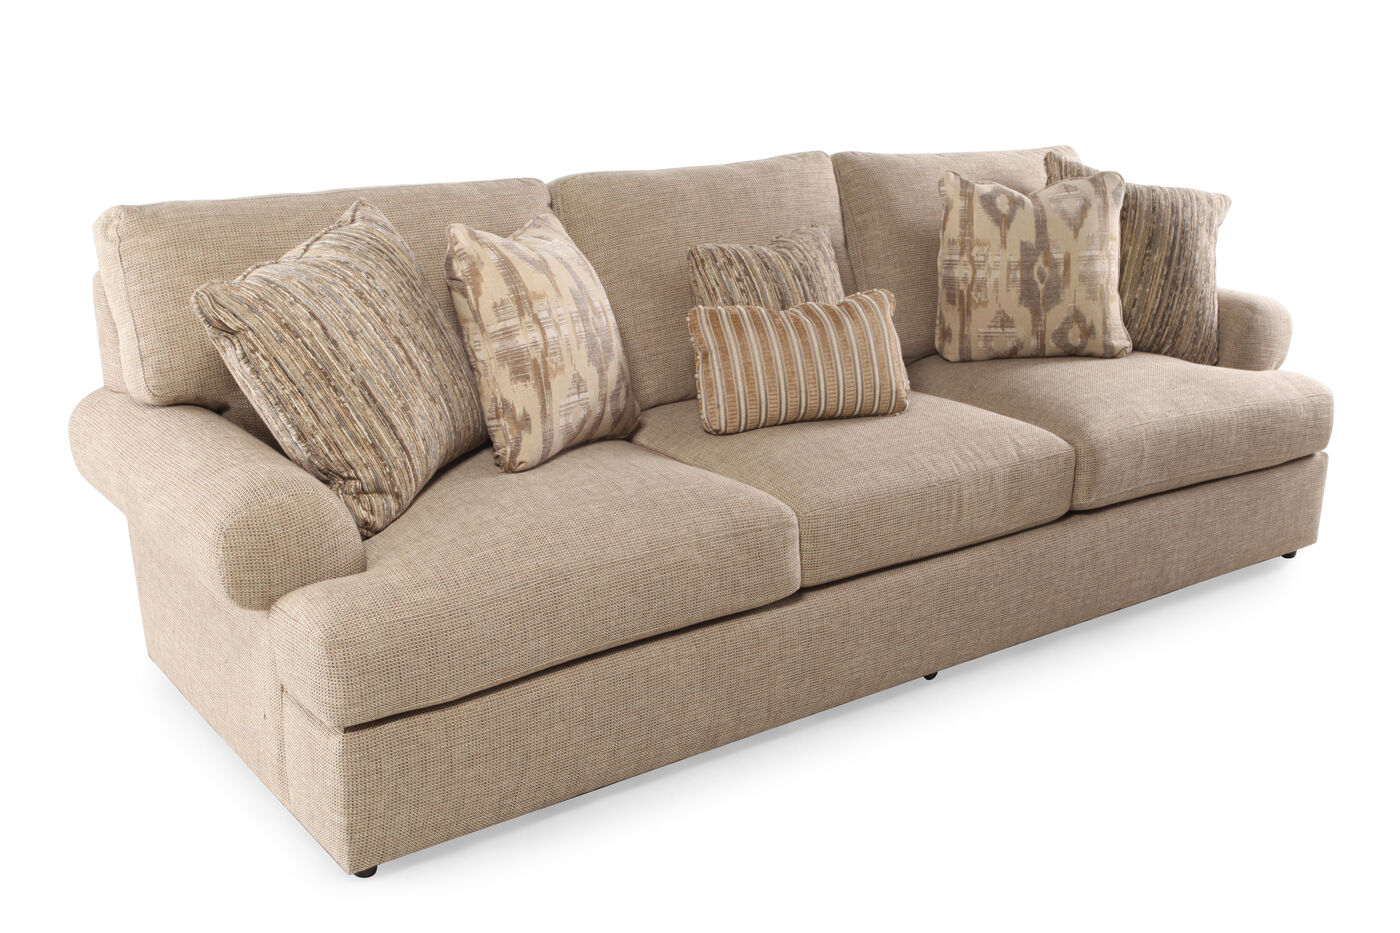 Bernhardt andrew sofa mathis brothers furniture for Where to buy bernhardt furniture online